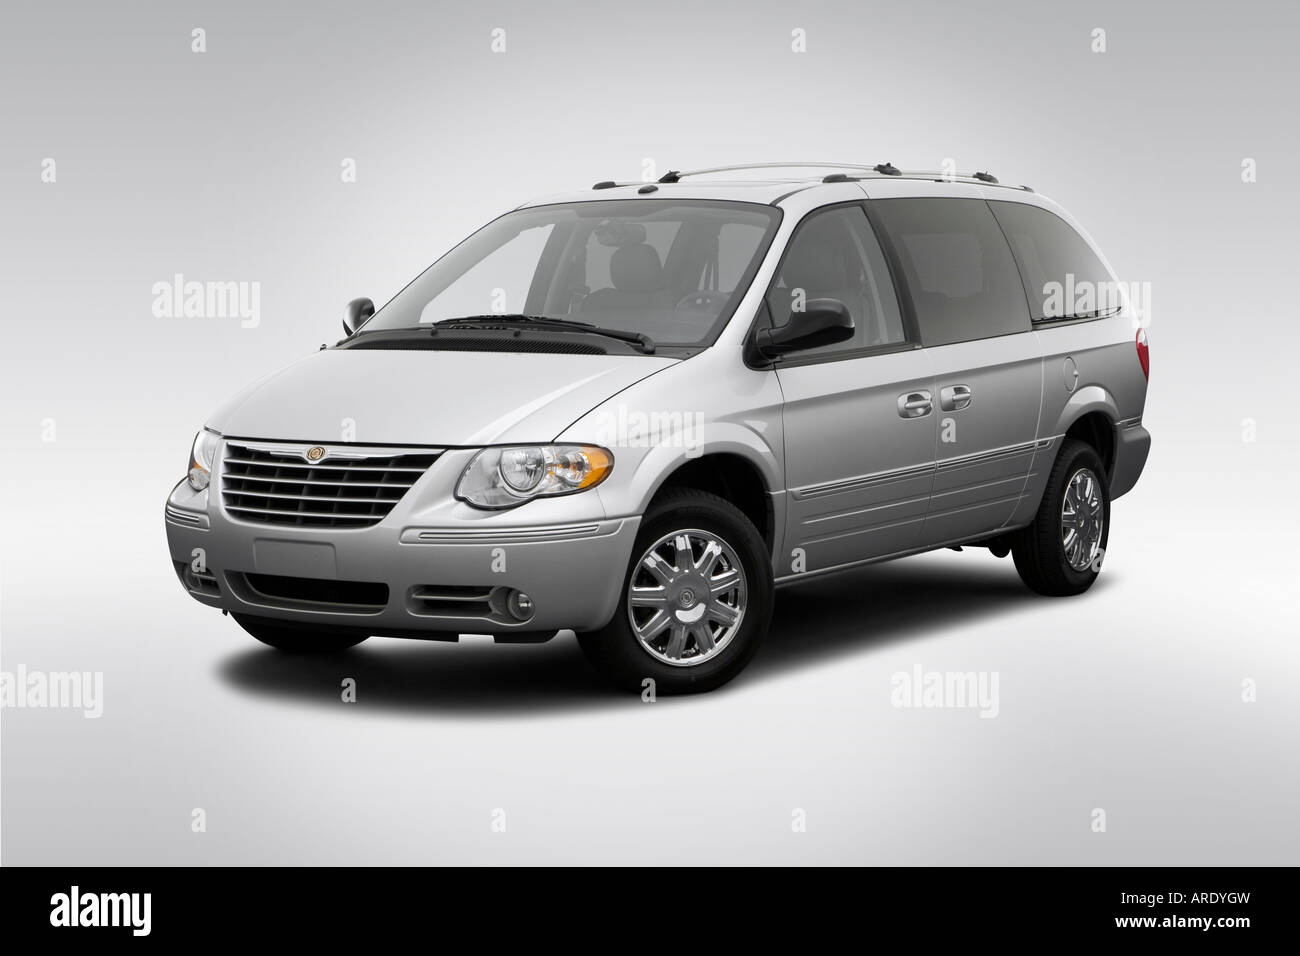 2006 chrysler town country limited in silver front angle view stock photo 16024824 alamy. Black Bedroom Furniture Sets. Home Design Ideas